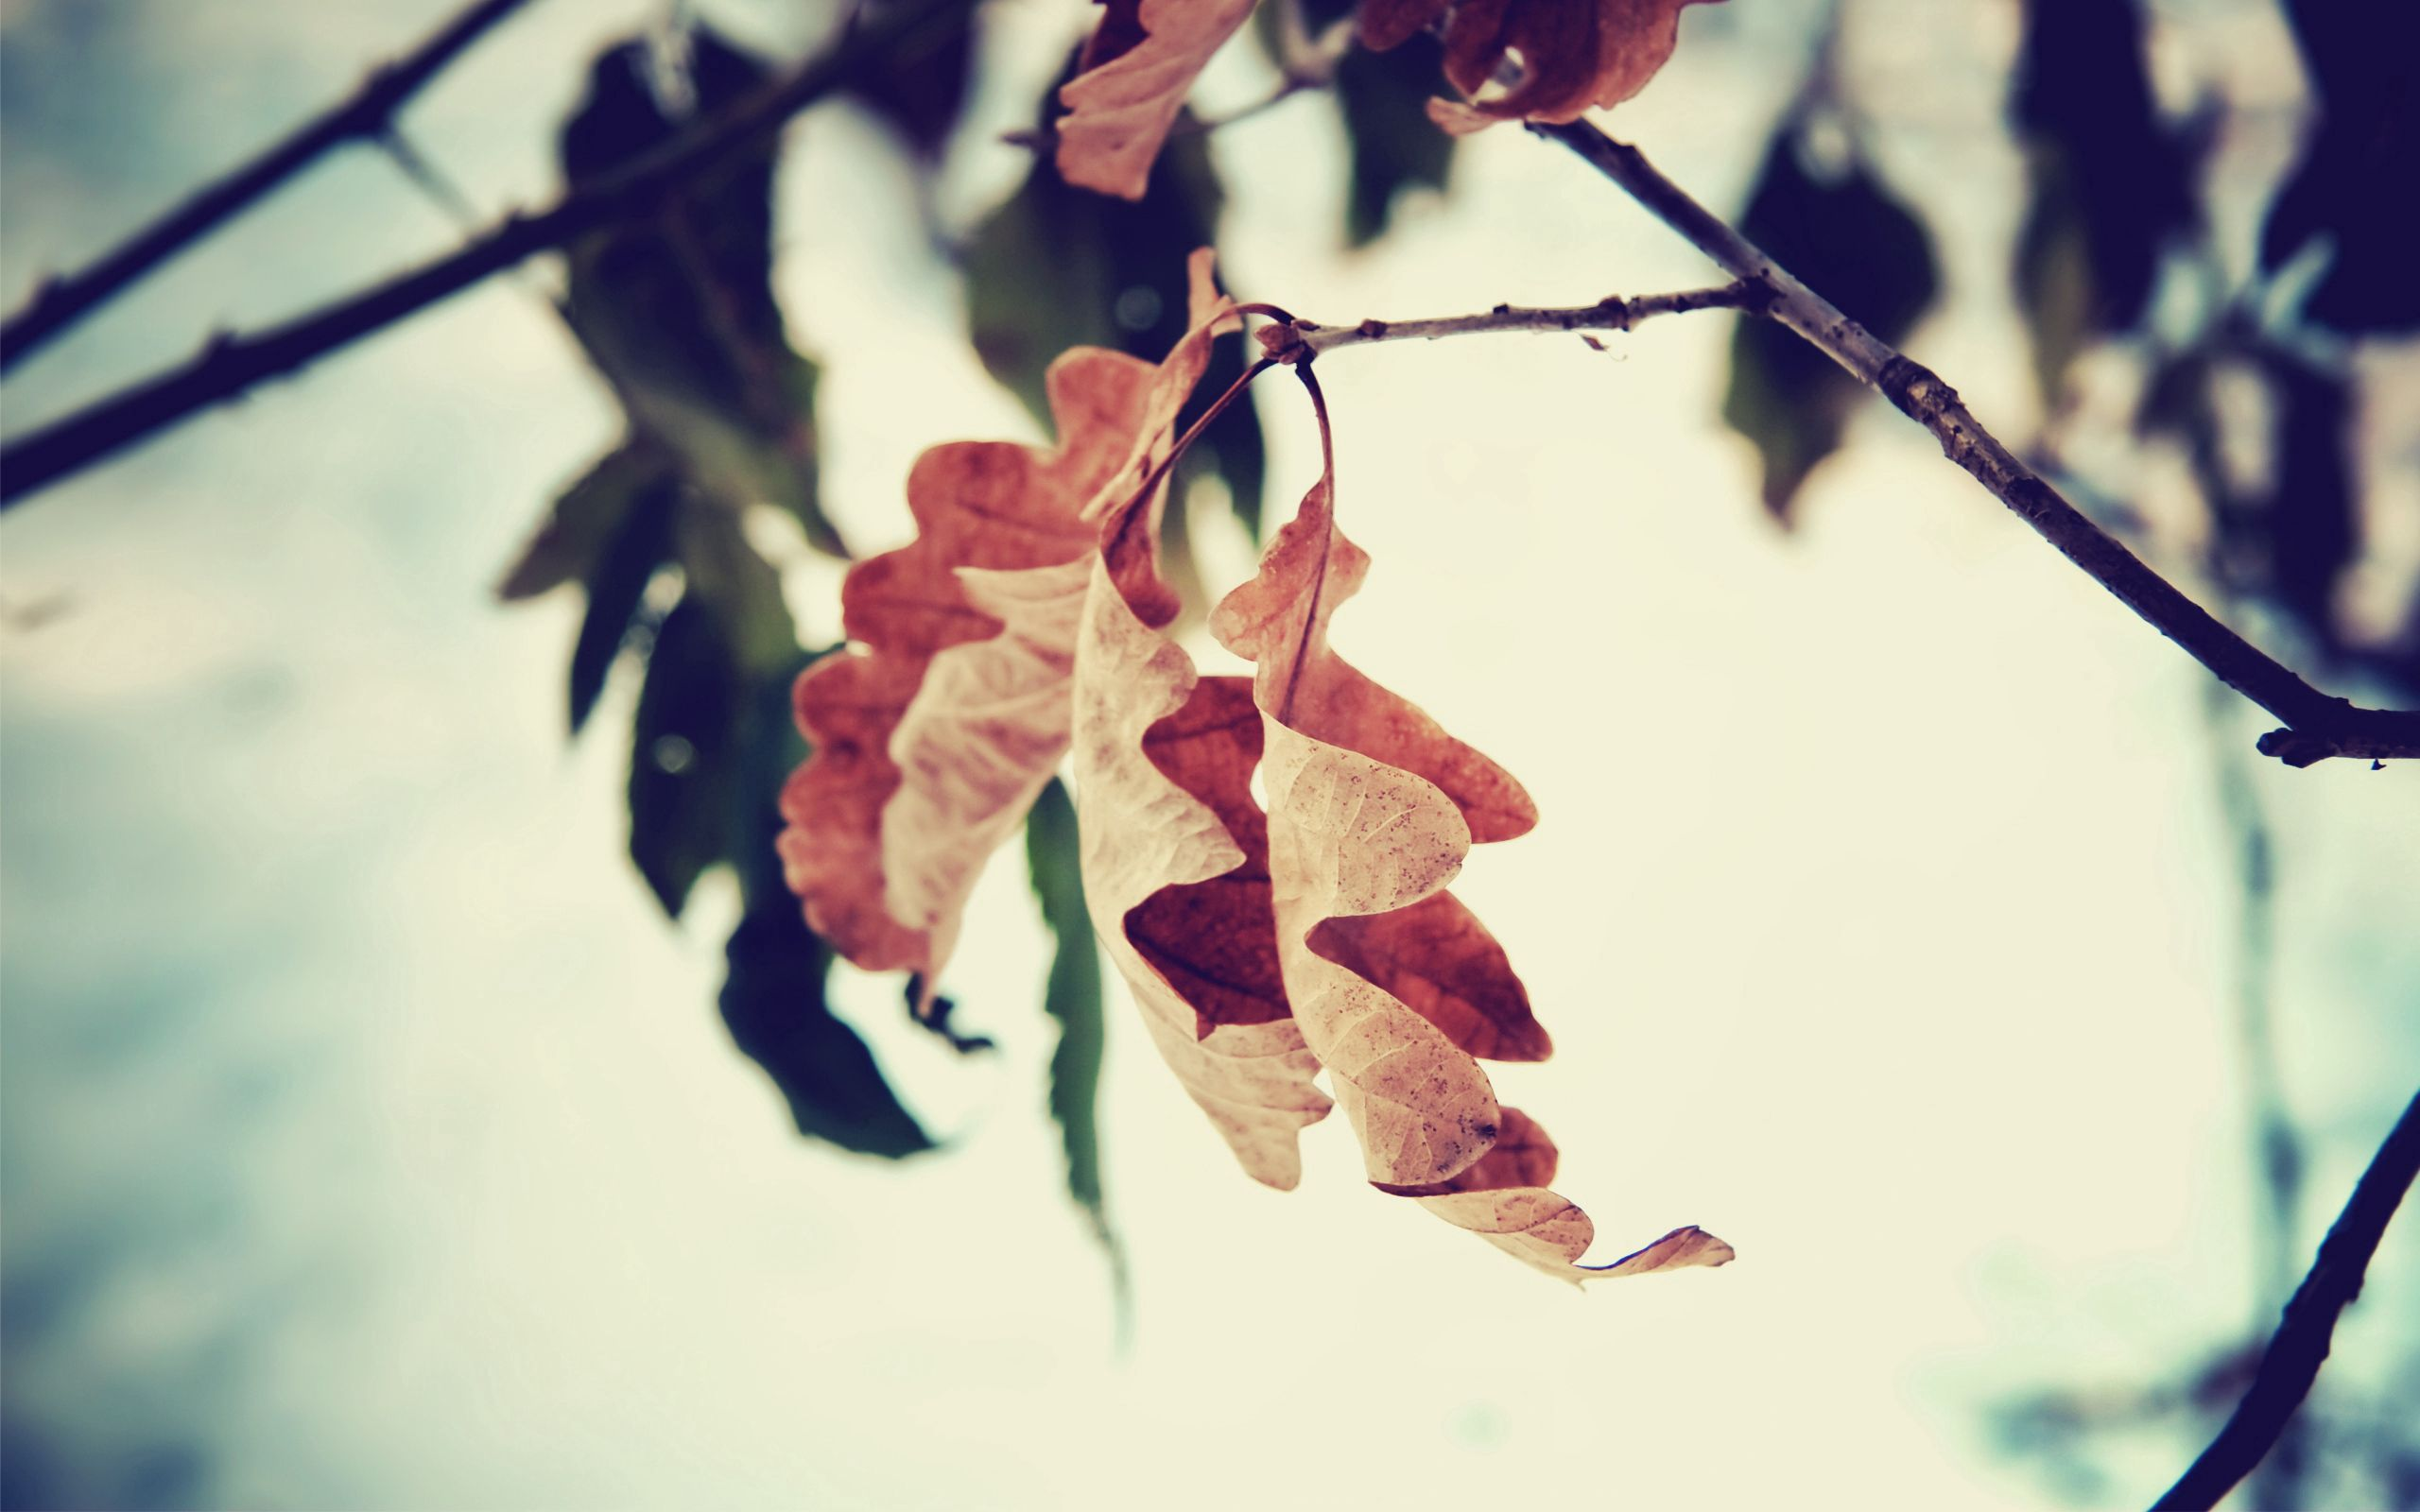 126766 download wallpaper Macro, Leaves, Branch, Brown, Dried, Autumn screensavers and pictures for free